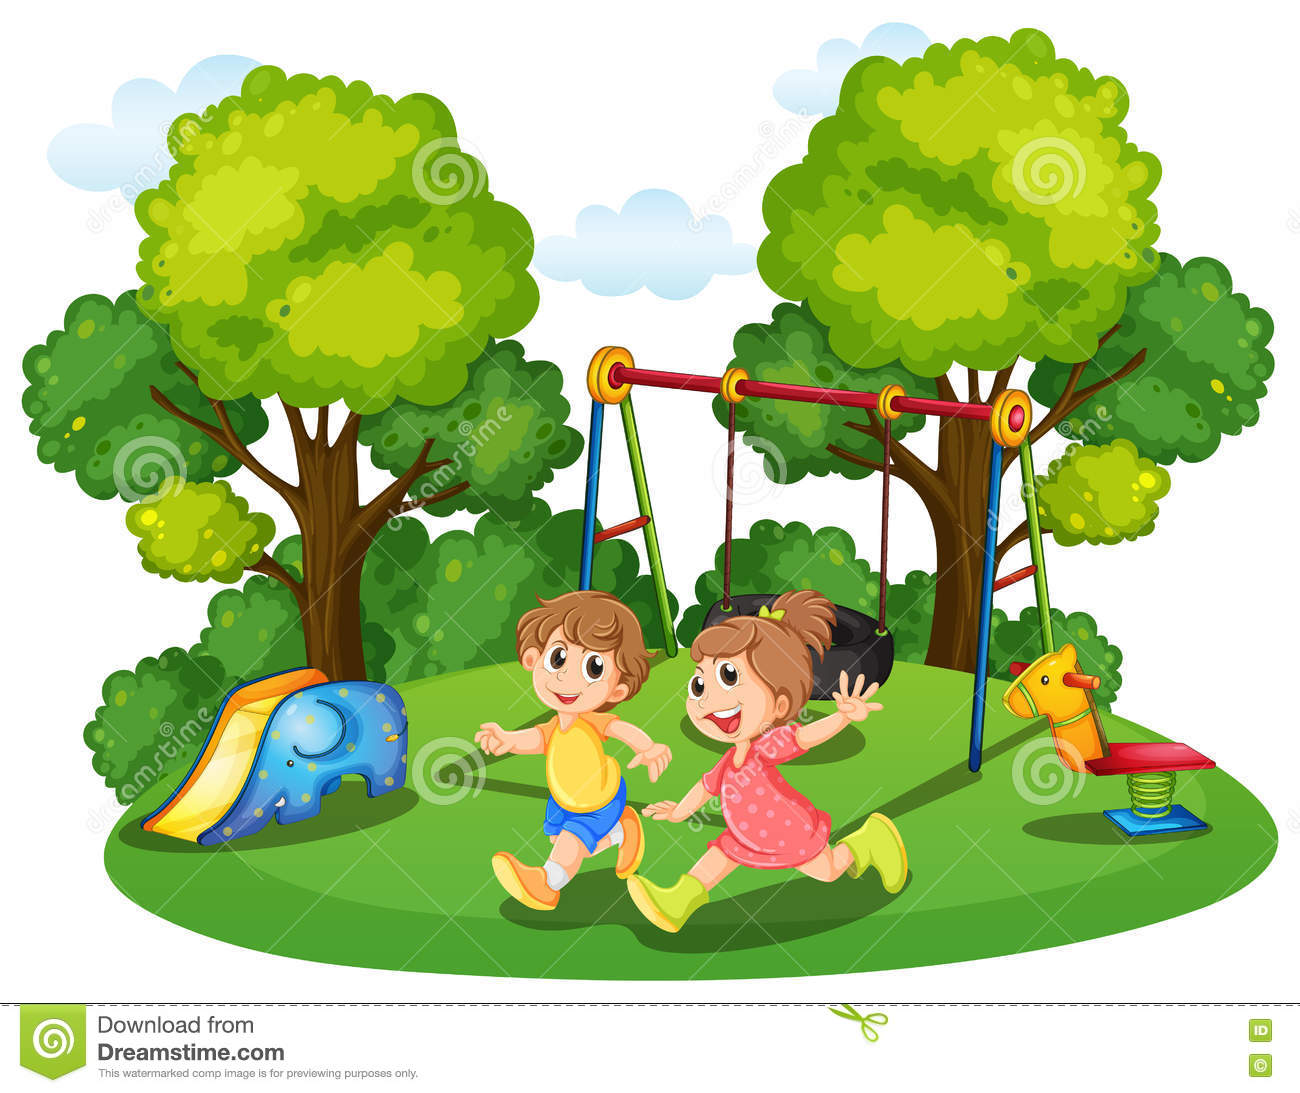 Two Kids Running Park Stock Illustration-Two Kids Running Park Stock Illustrations u2013 16 Two Kids Running Park Stock  Illustrations, Vectors u0026 Clipart - Dreamstime-18